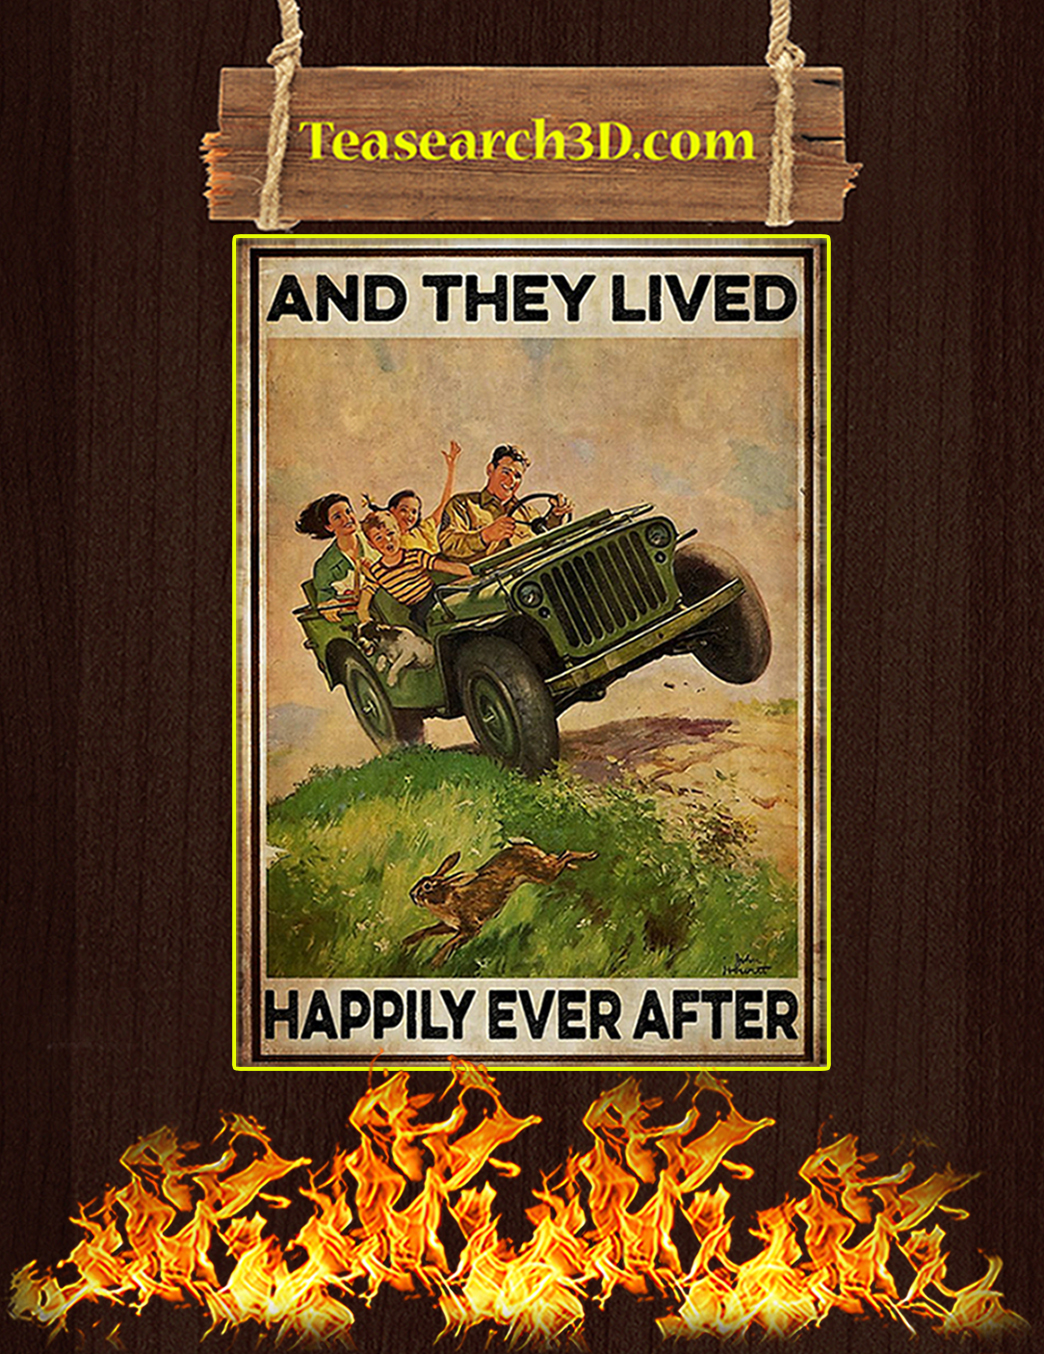 Jeep and they lived happily ever after poster A1